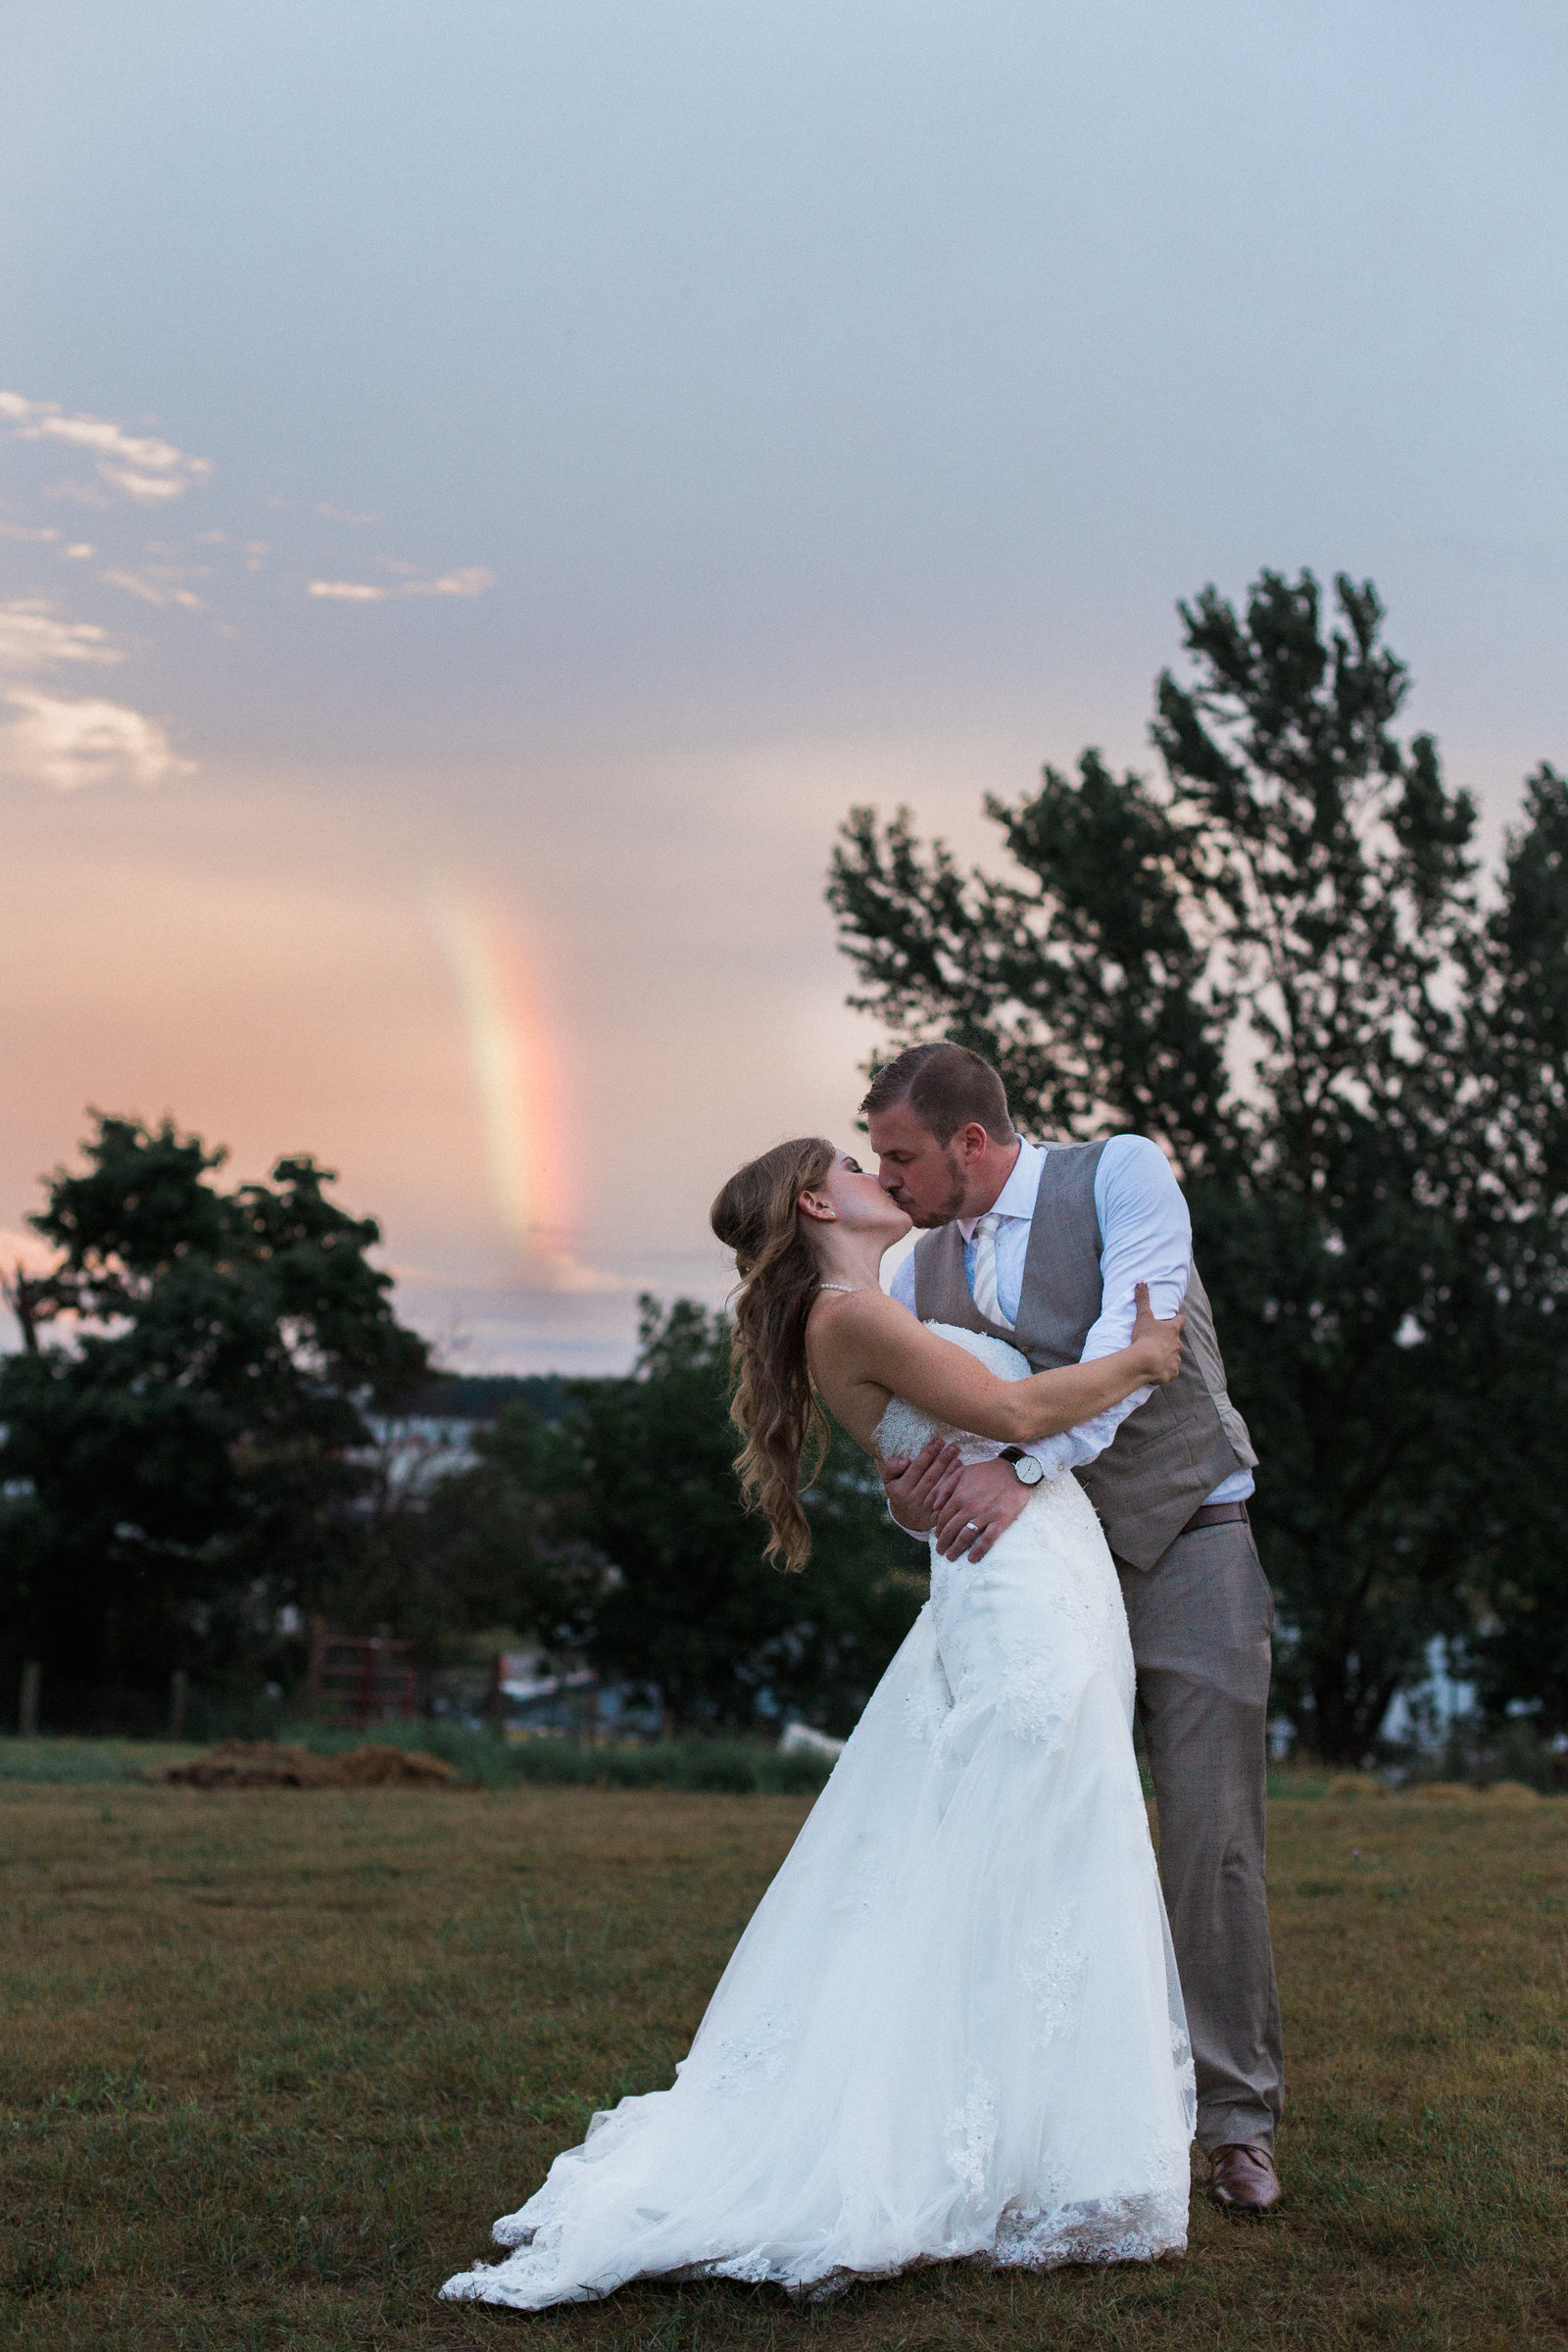 Destination Wedding Photography Jess Collins Photography Steckle Farm Wedding in Kitchener Sunset rainbow bride and groom photo